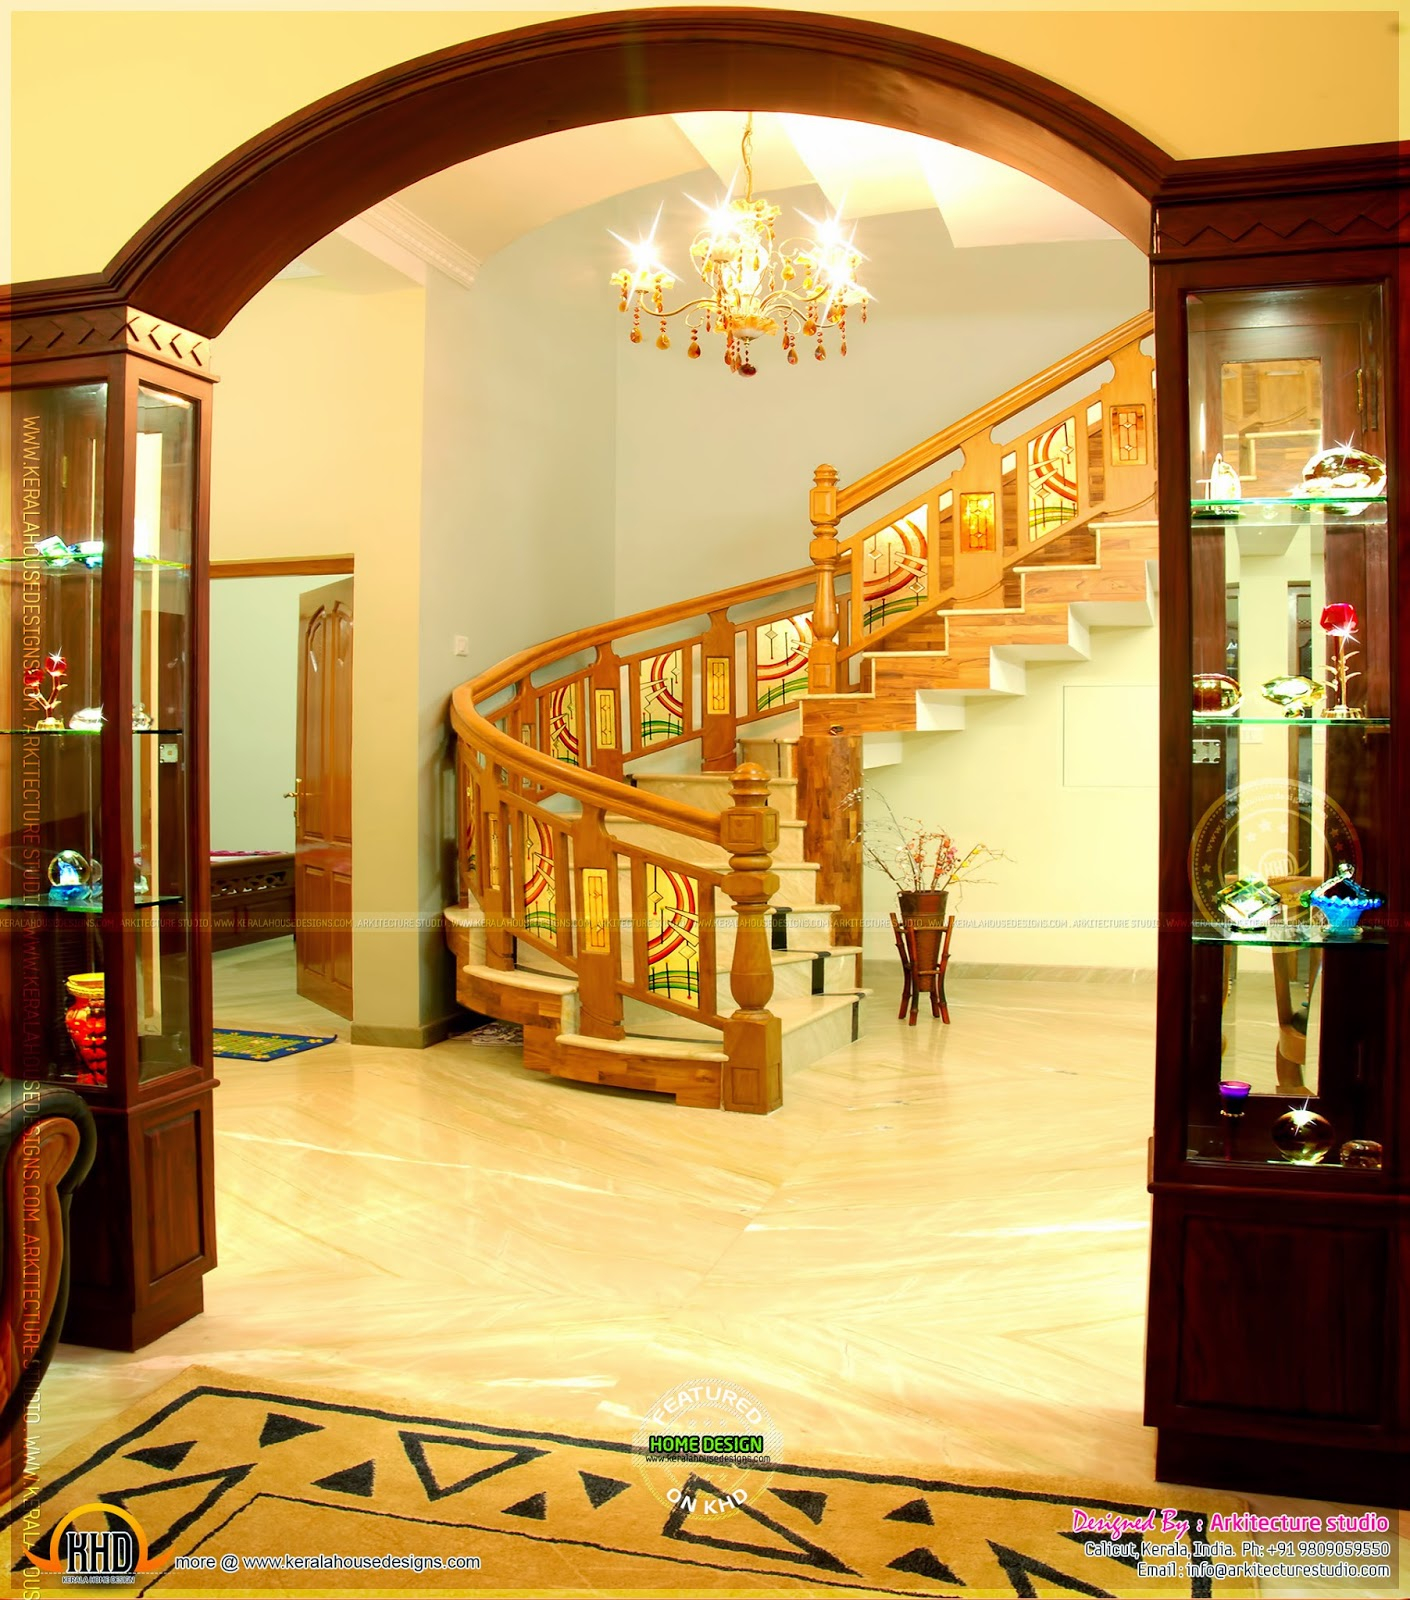 Real house in kerala with interior photos kerala home for Kerala house interior arch design